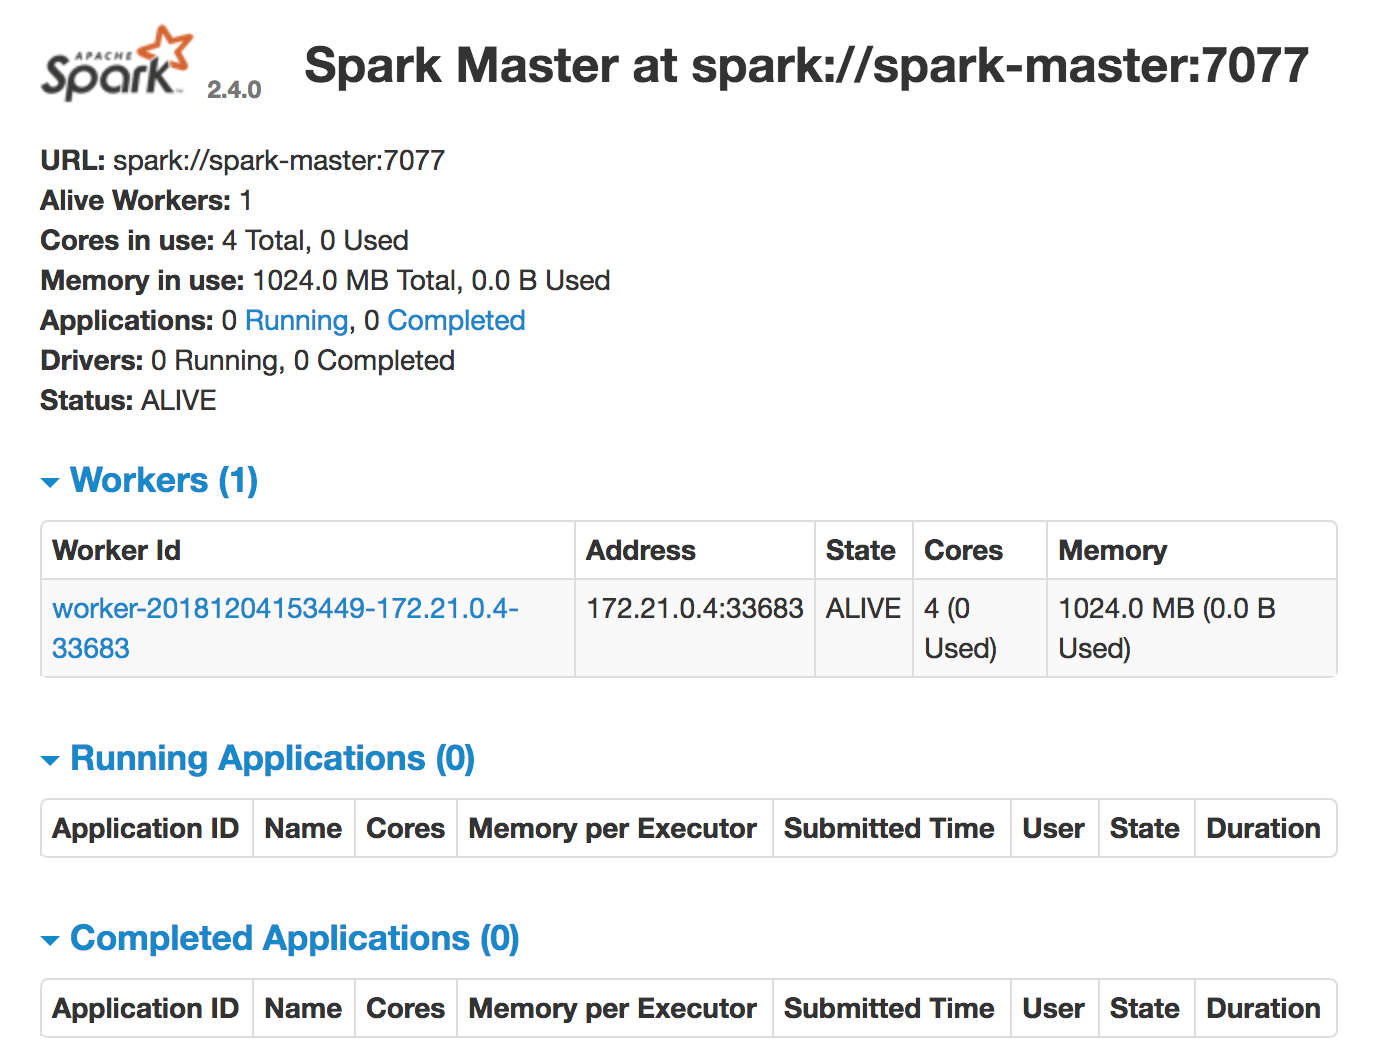 A Journey Into Big Data with Apache Spark: Part 1 - Towards